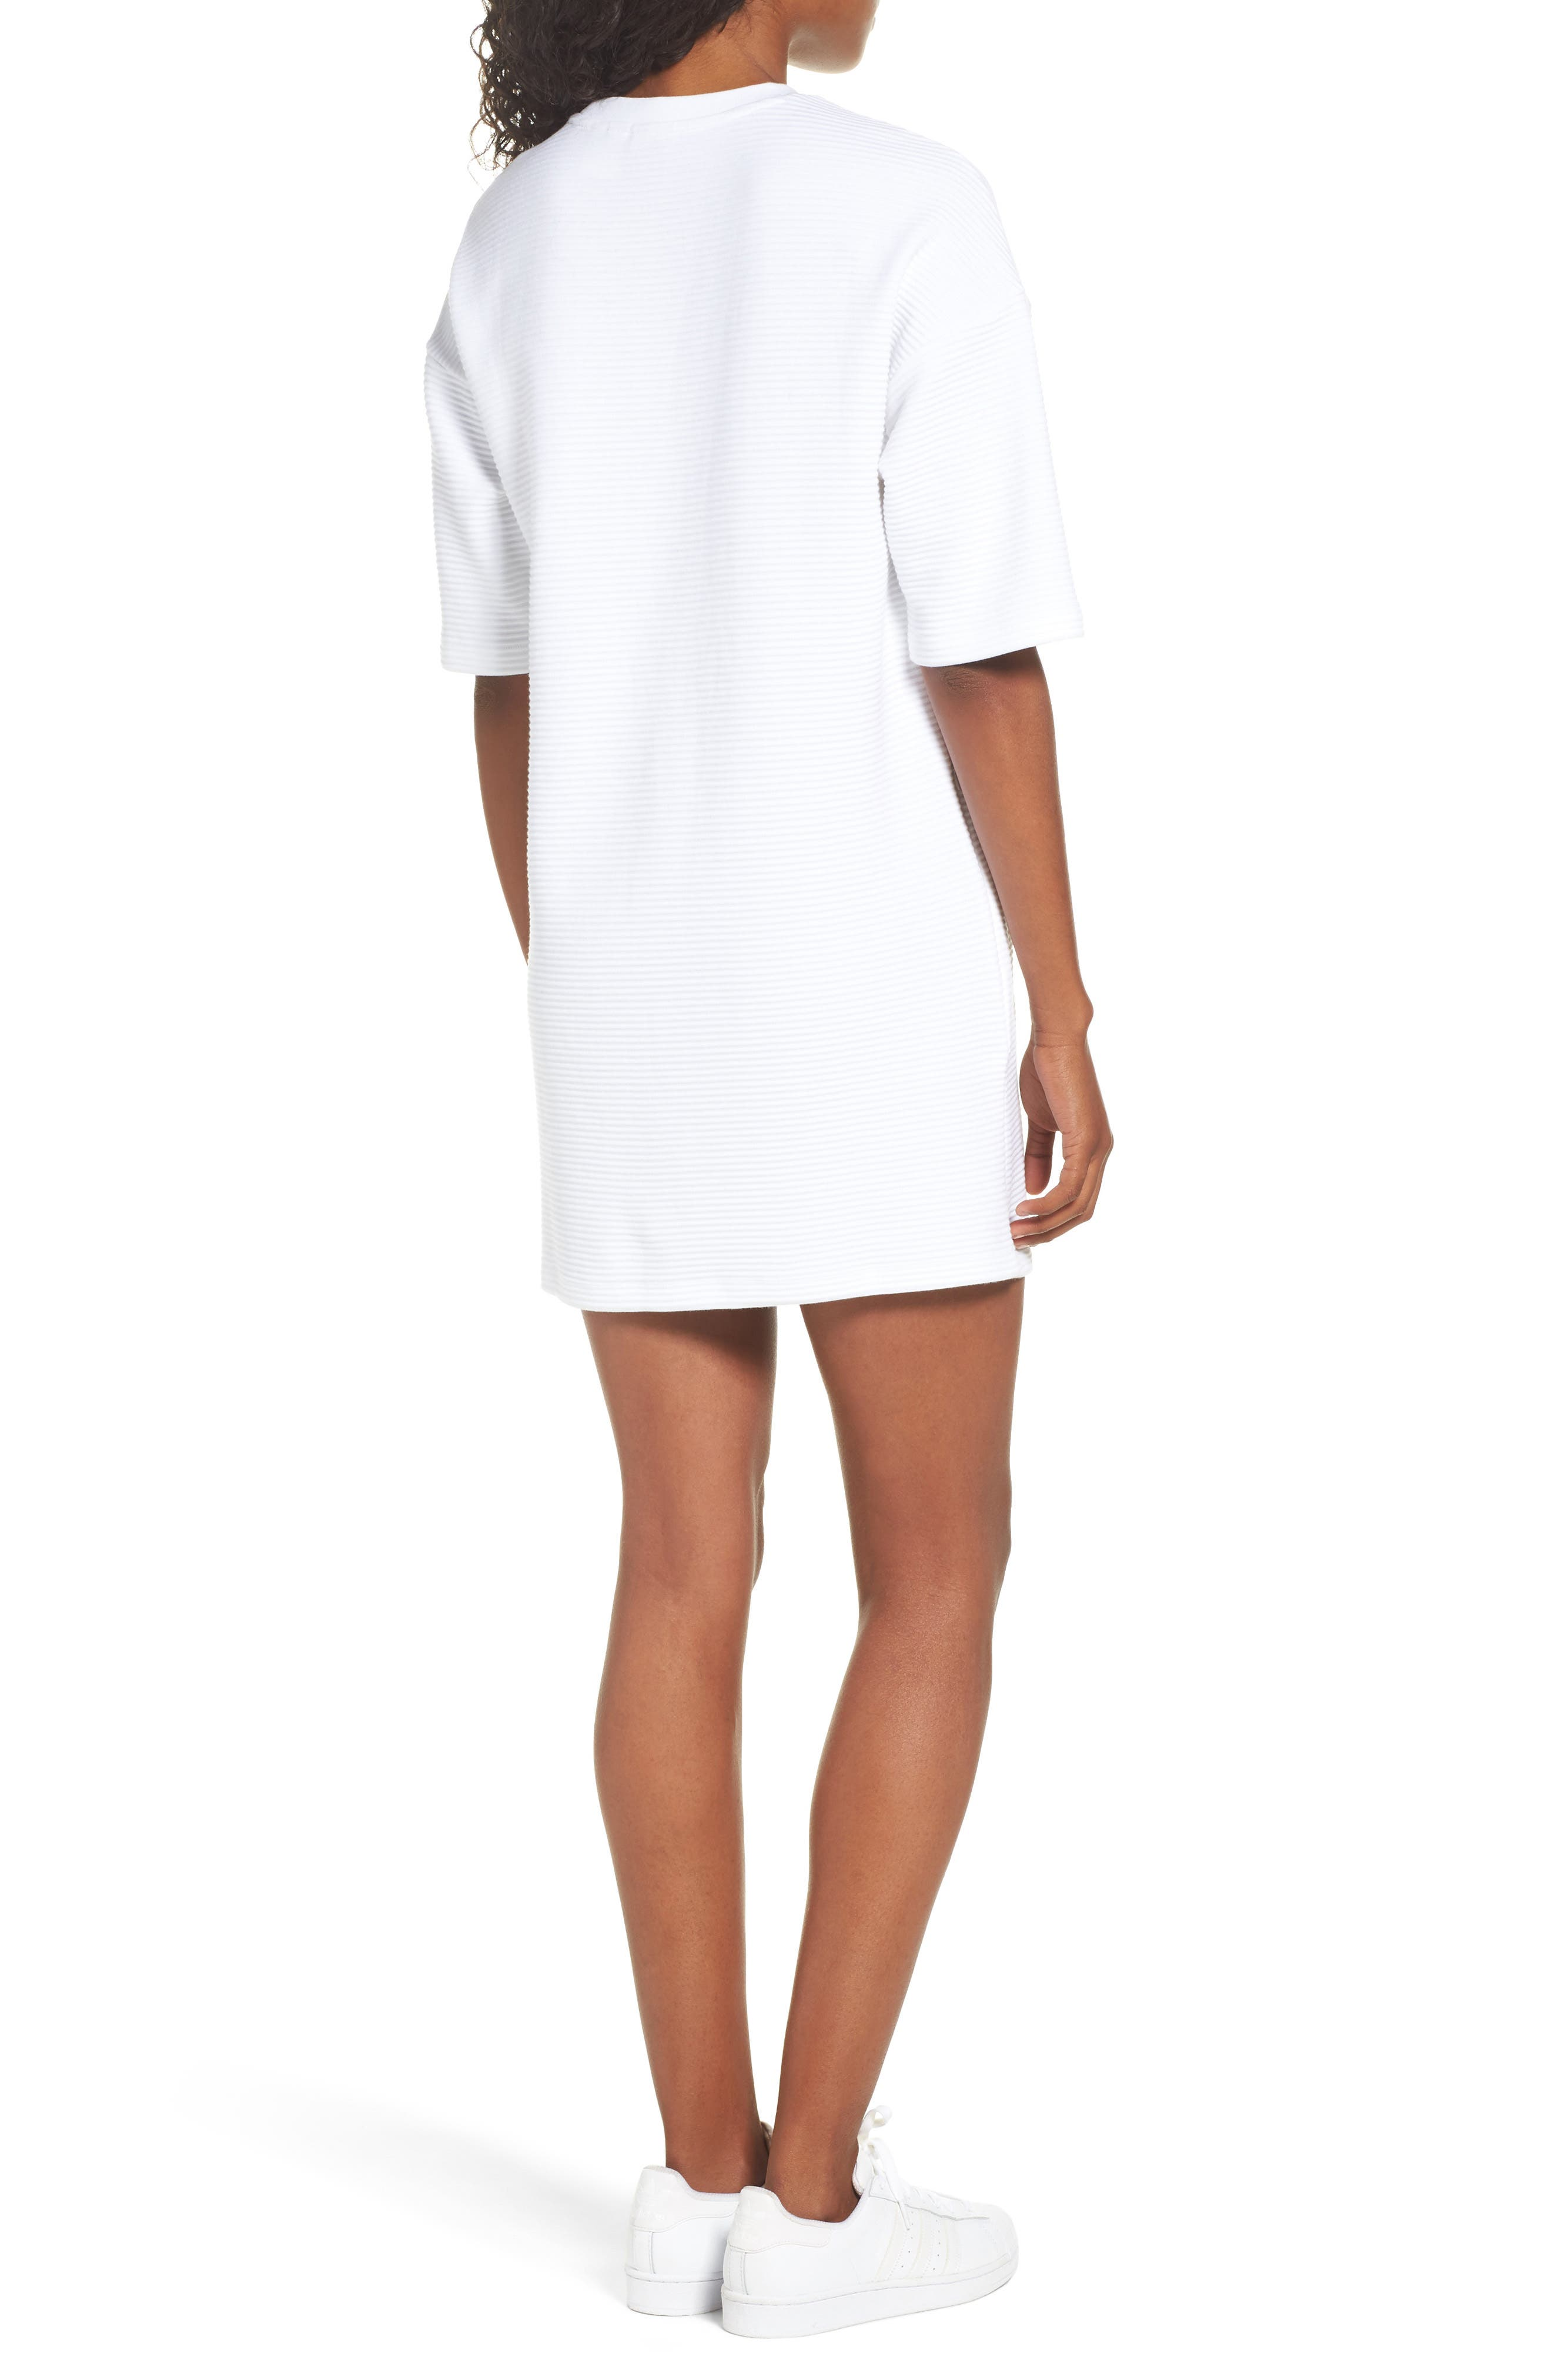 Originals EQT T-Shirt Dress,                             Alternate thumbnail 2, color,                             White